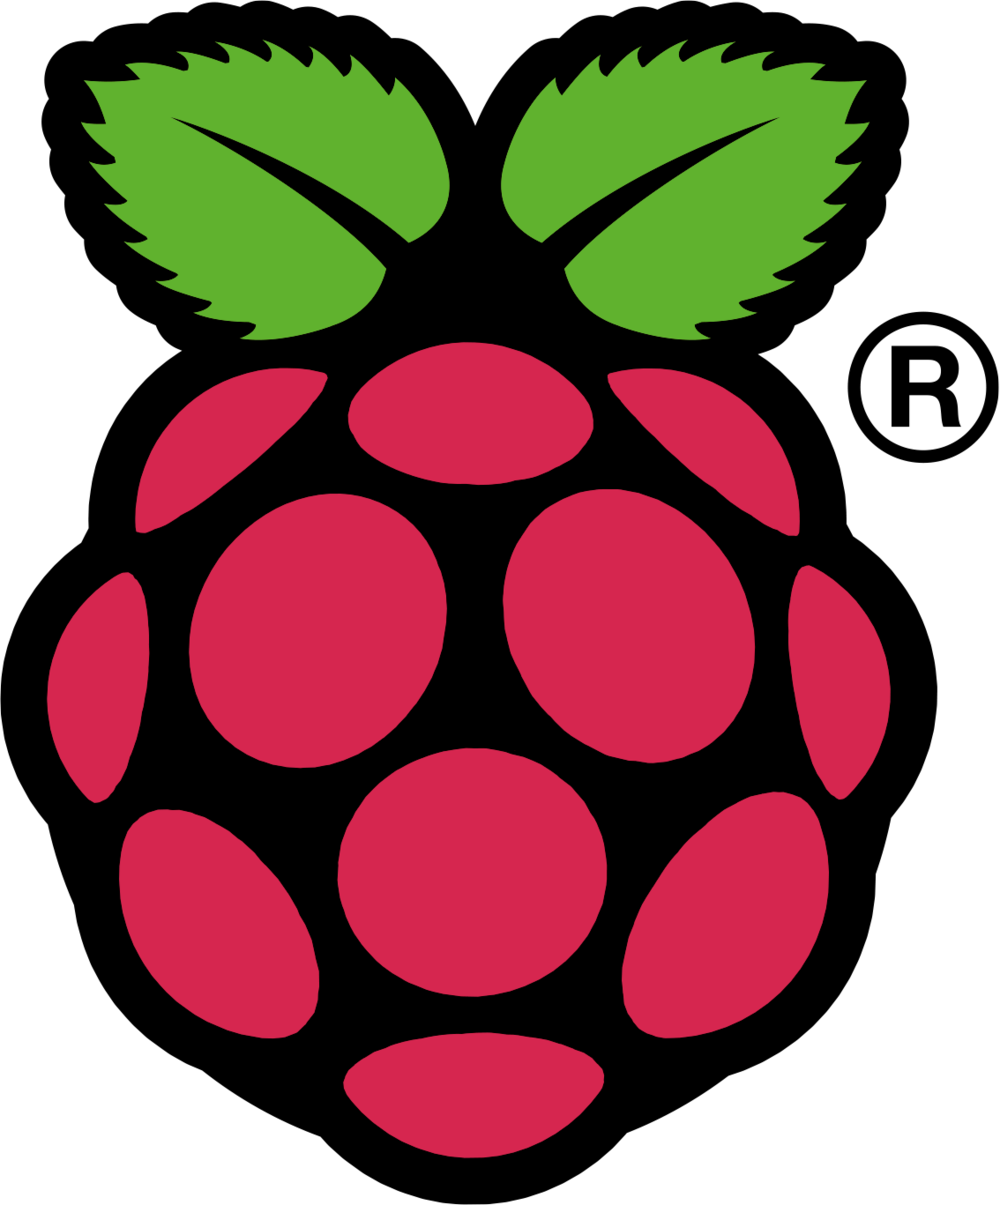 Raspi_Colour_R.png